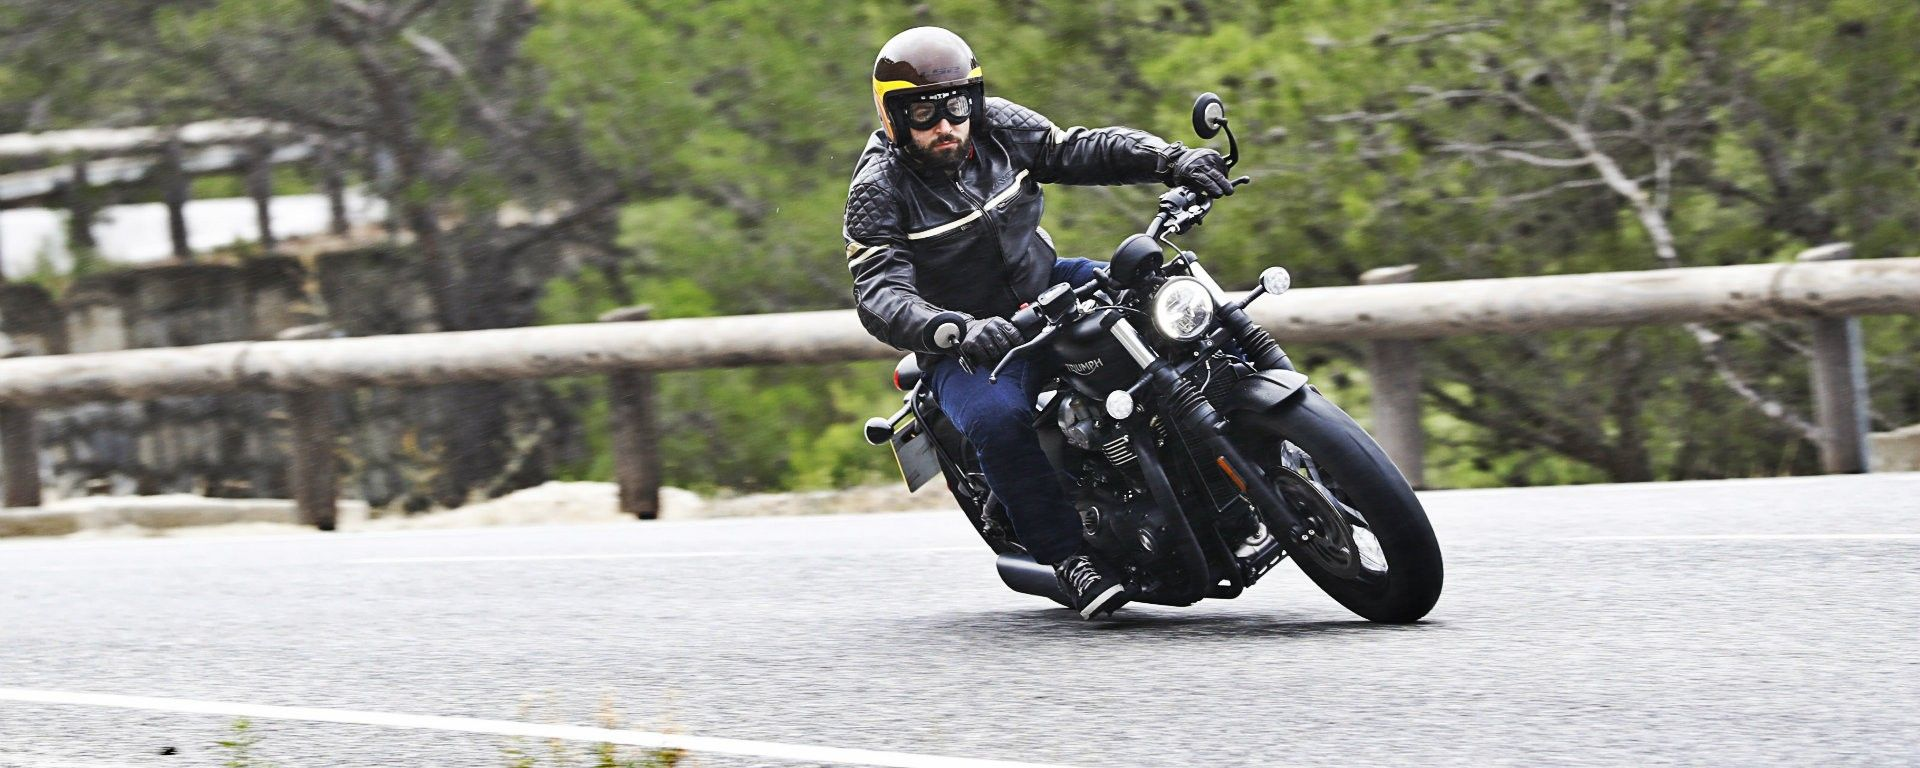 Triumph Bobber Black 2018: la prova su strada in video